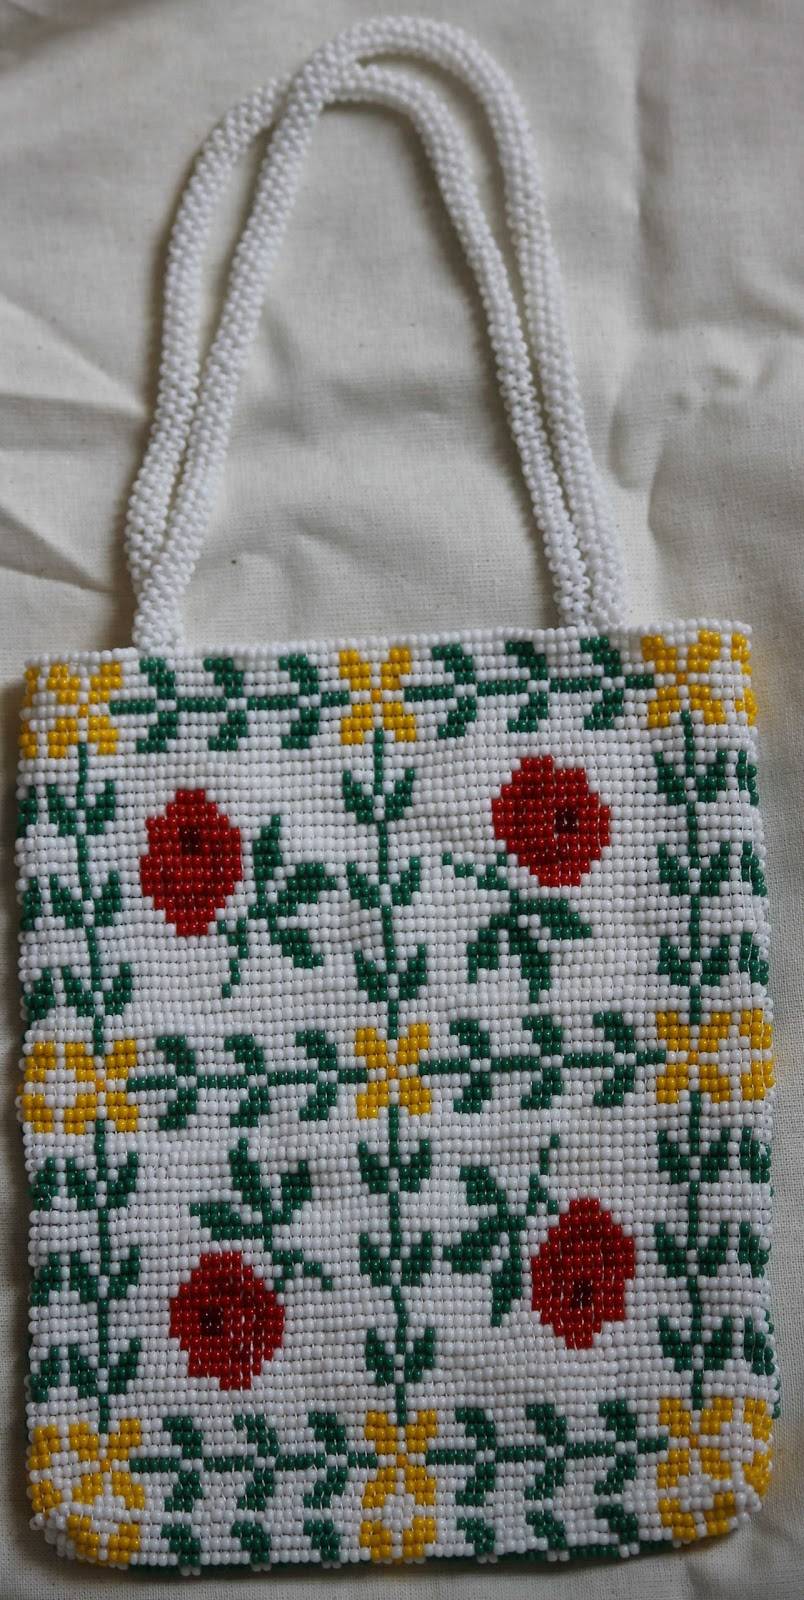 ... : Red rose bead loom bag - using cross stitch patterns for bead looms